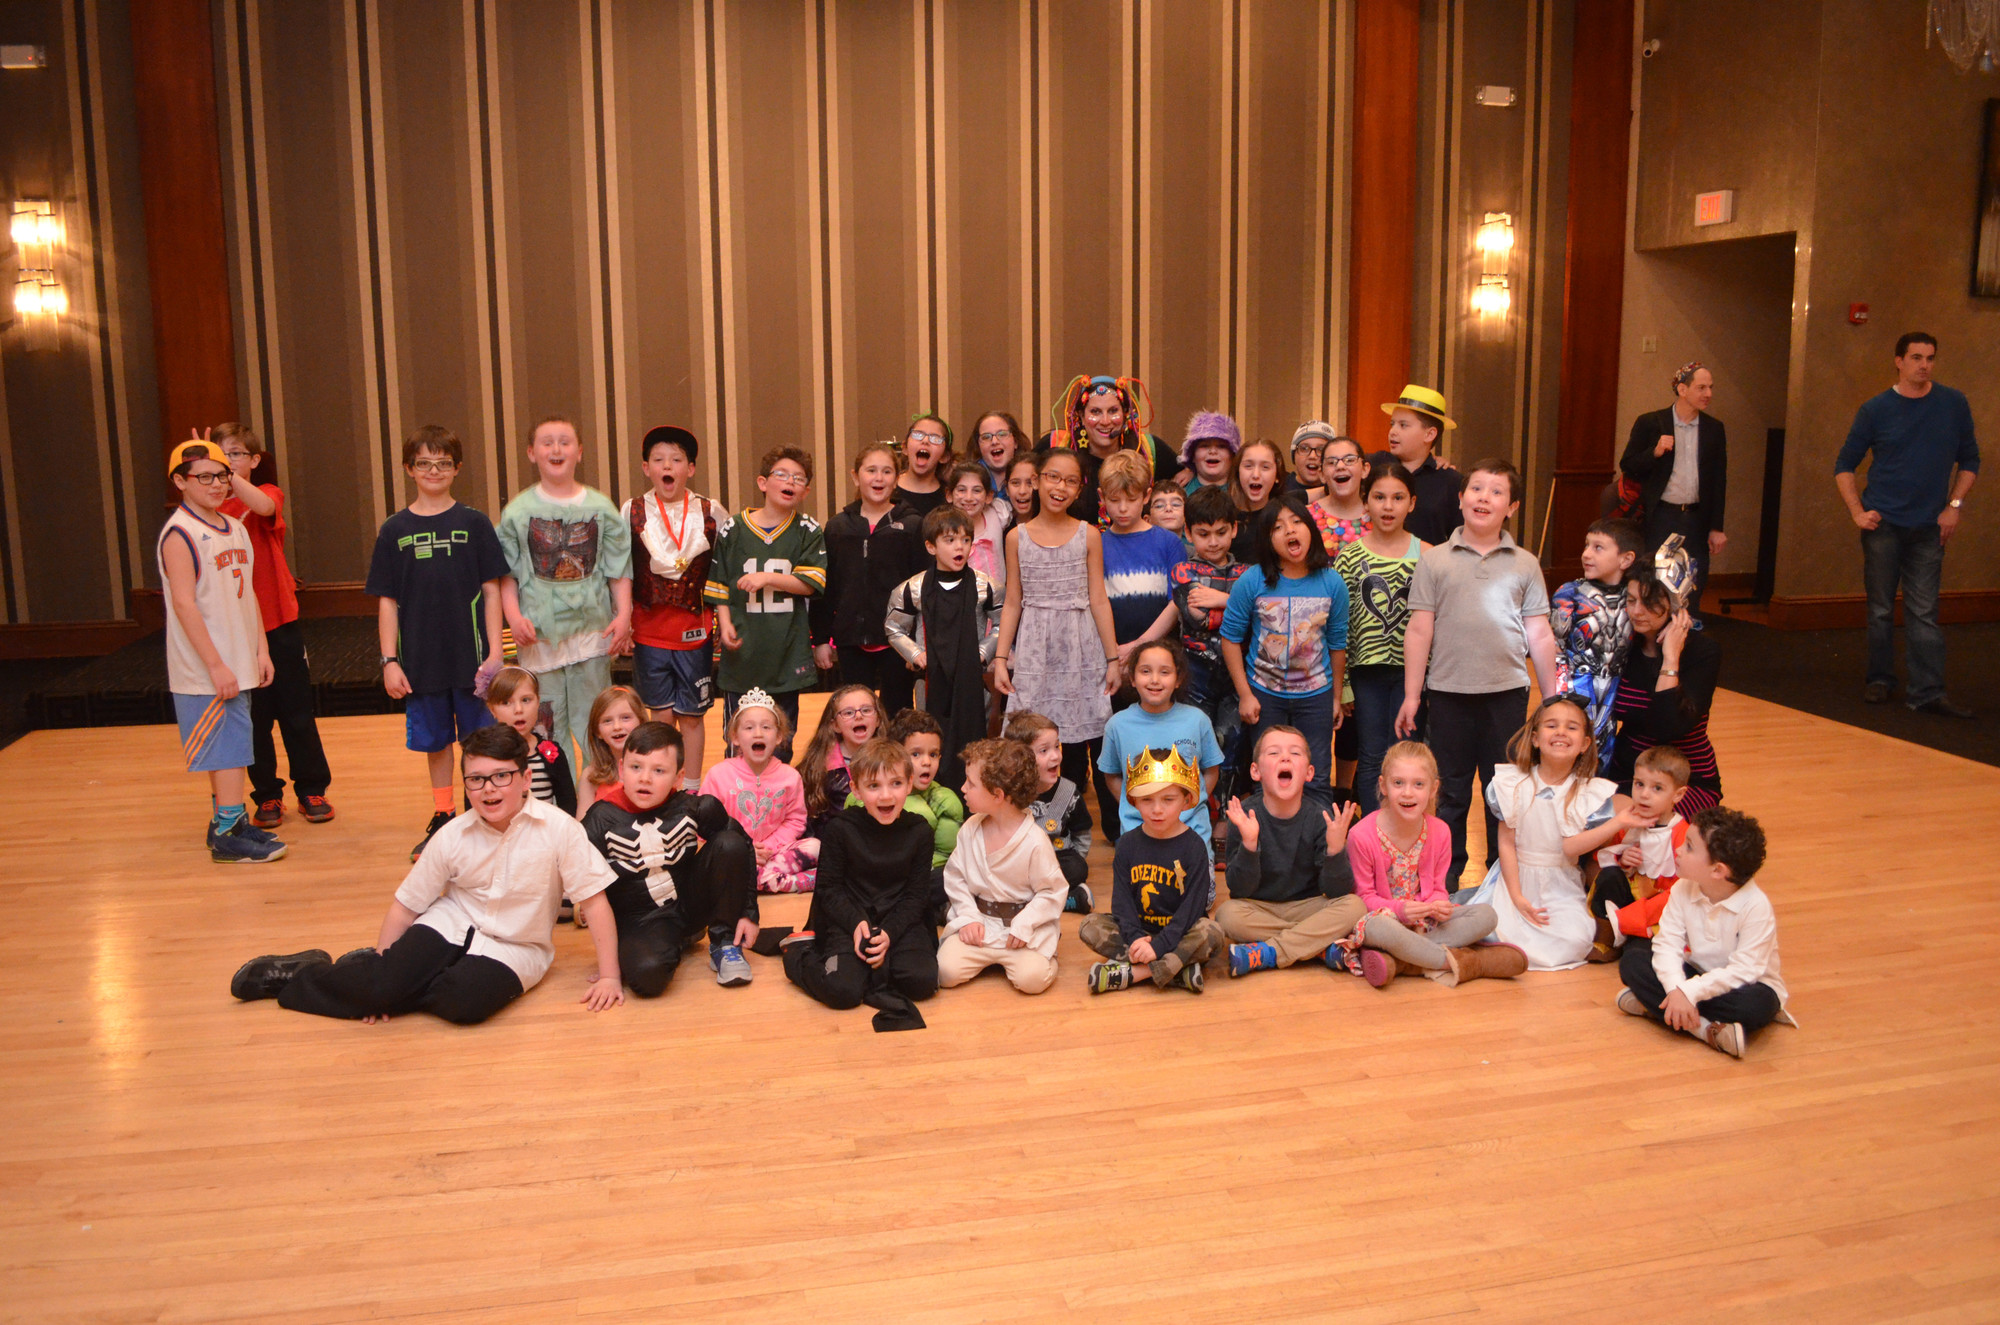 All of the children posed for a photo in the costumes that they wore for Purim.